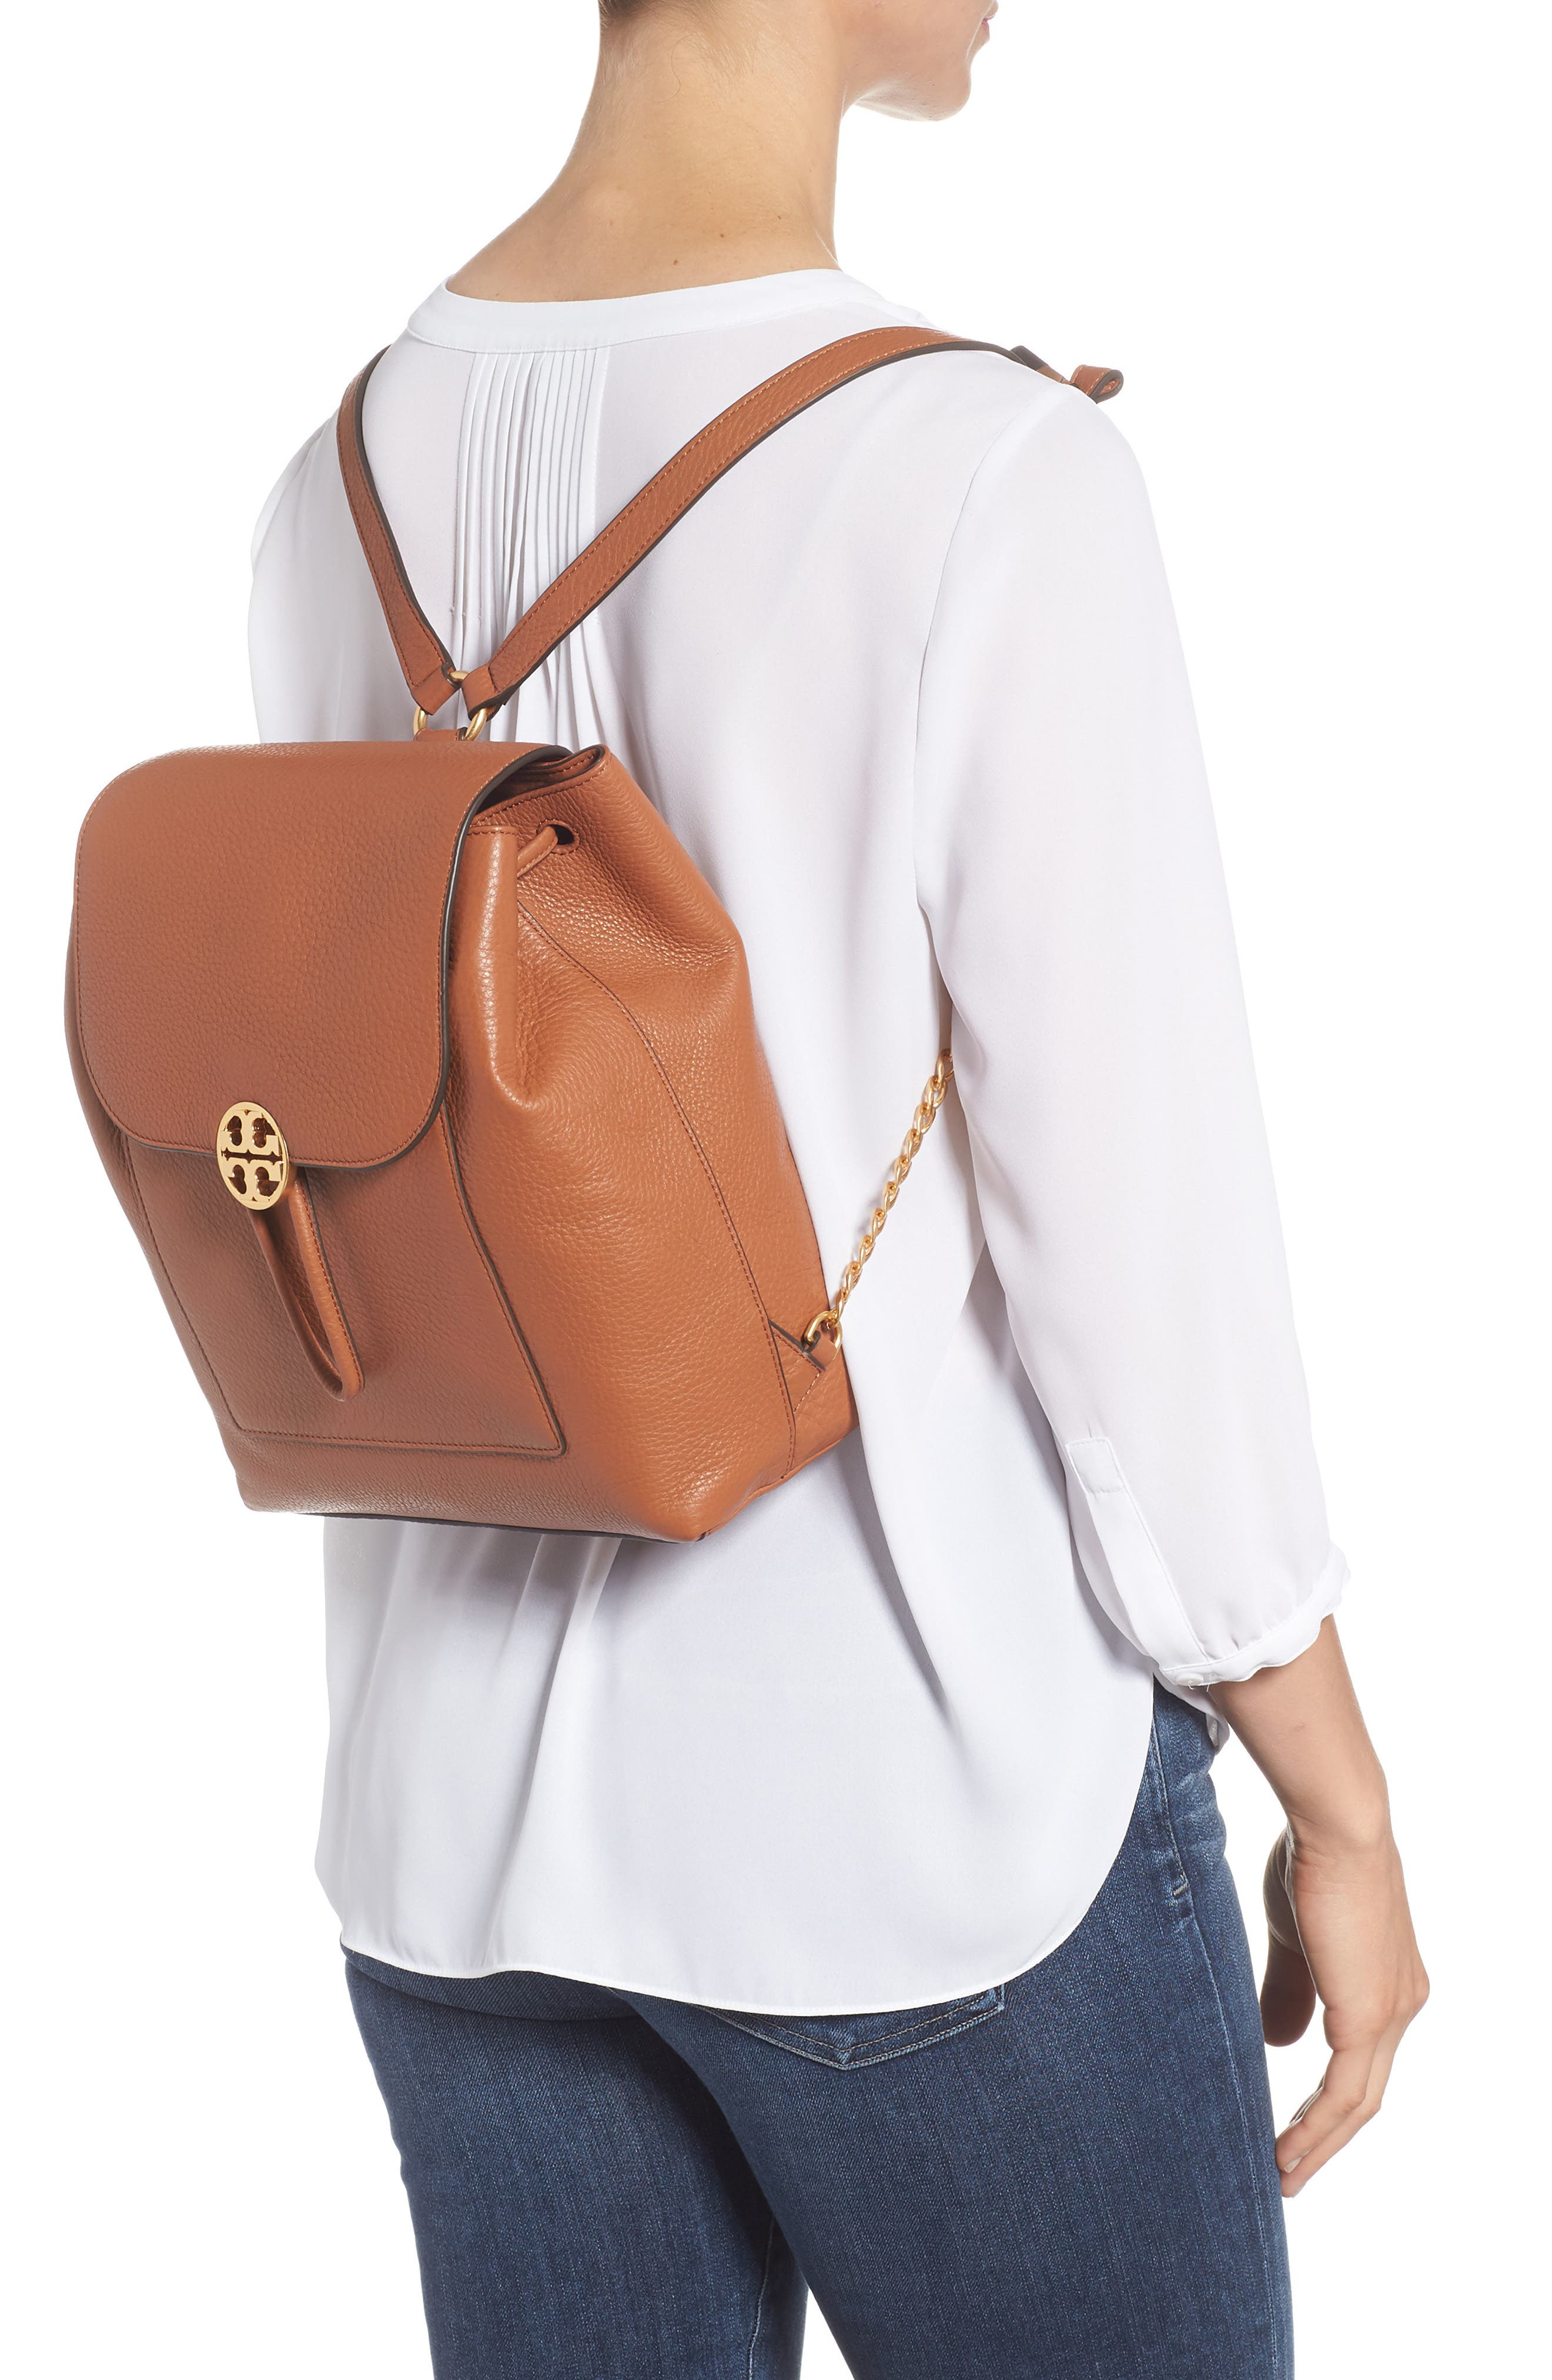 Chelsea Leather Backpack,                             Alternate thumbnail 2, color,                             Classic Tan